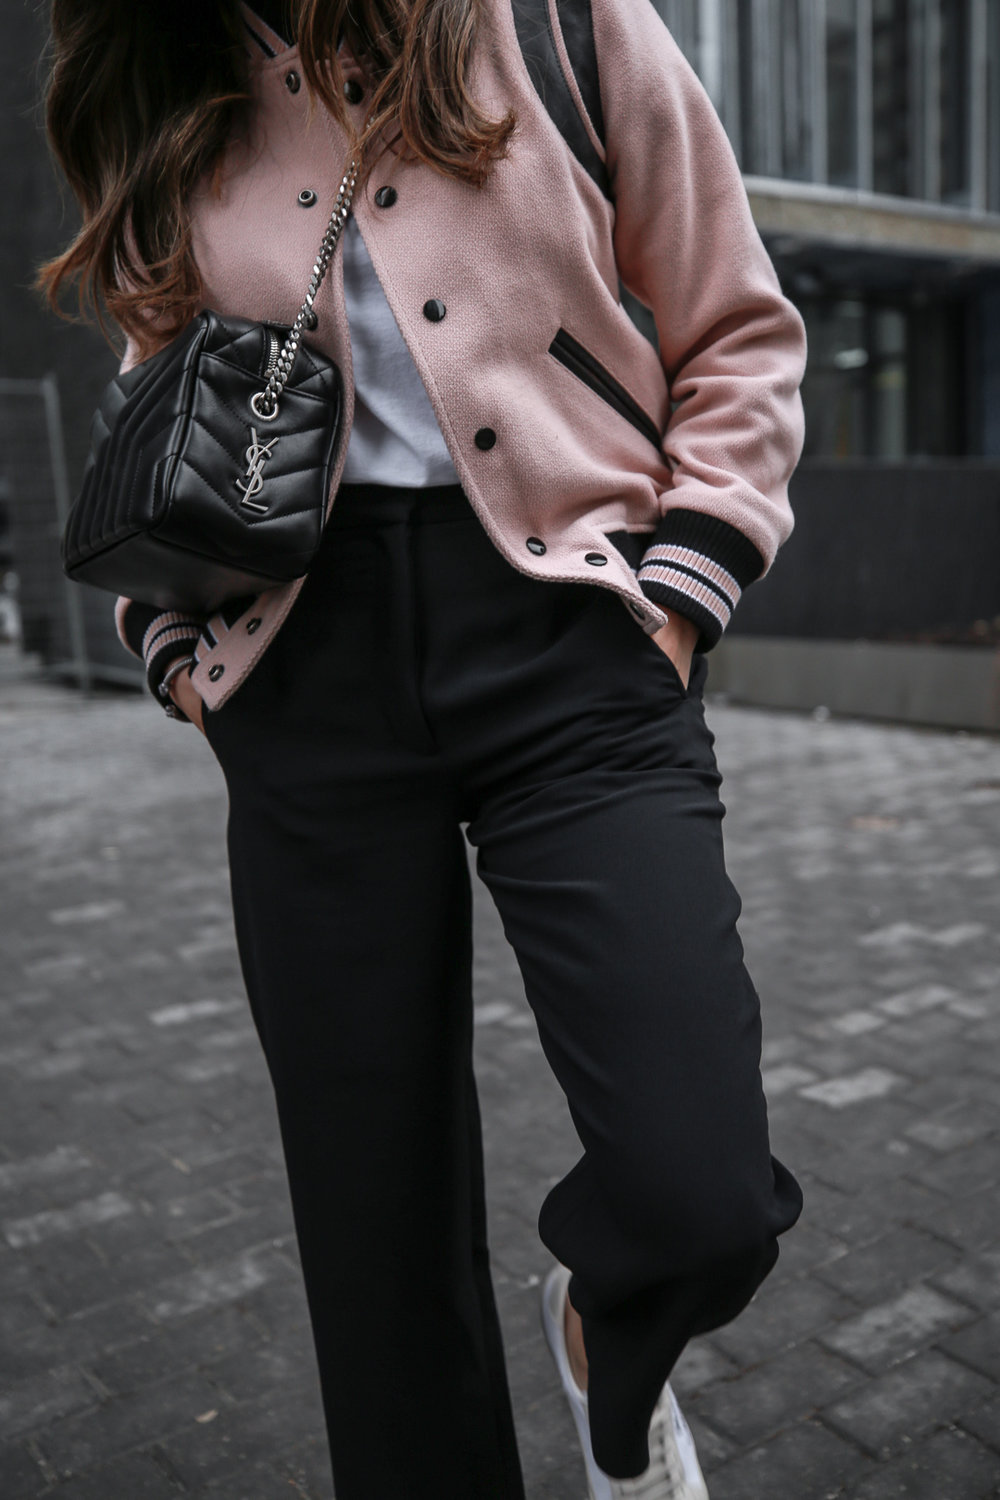 Nathalie Martin wearing Saint Laurent pink Teddy Jacket, YSL Lou Lou small bowling bag, white canvas sneakers, Aritzia Jallade Pant, street style, woahstyle.com_4058-2.jpg